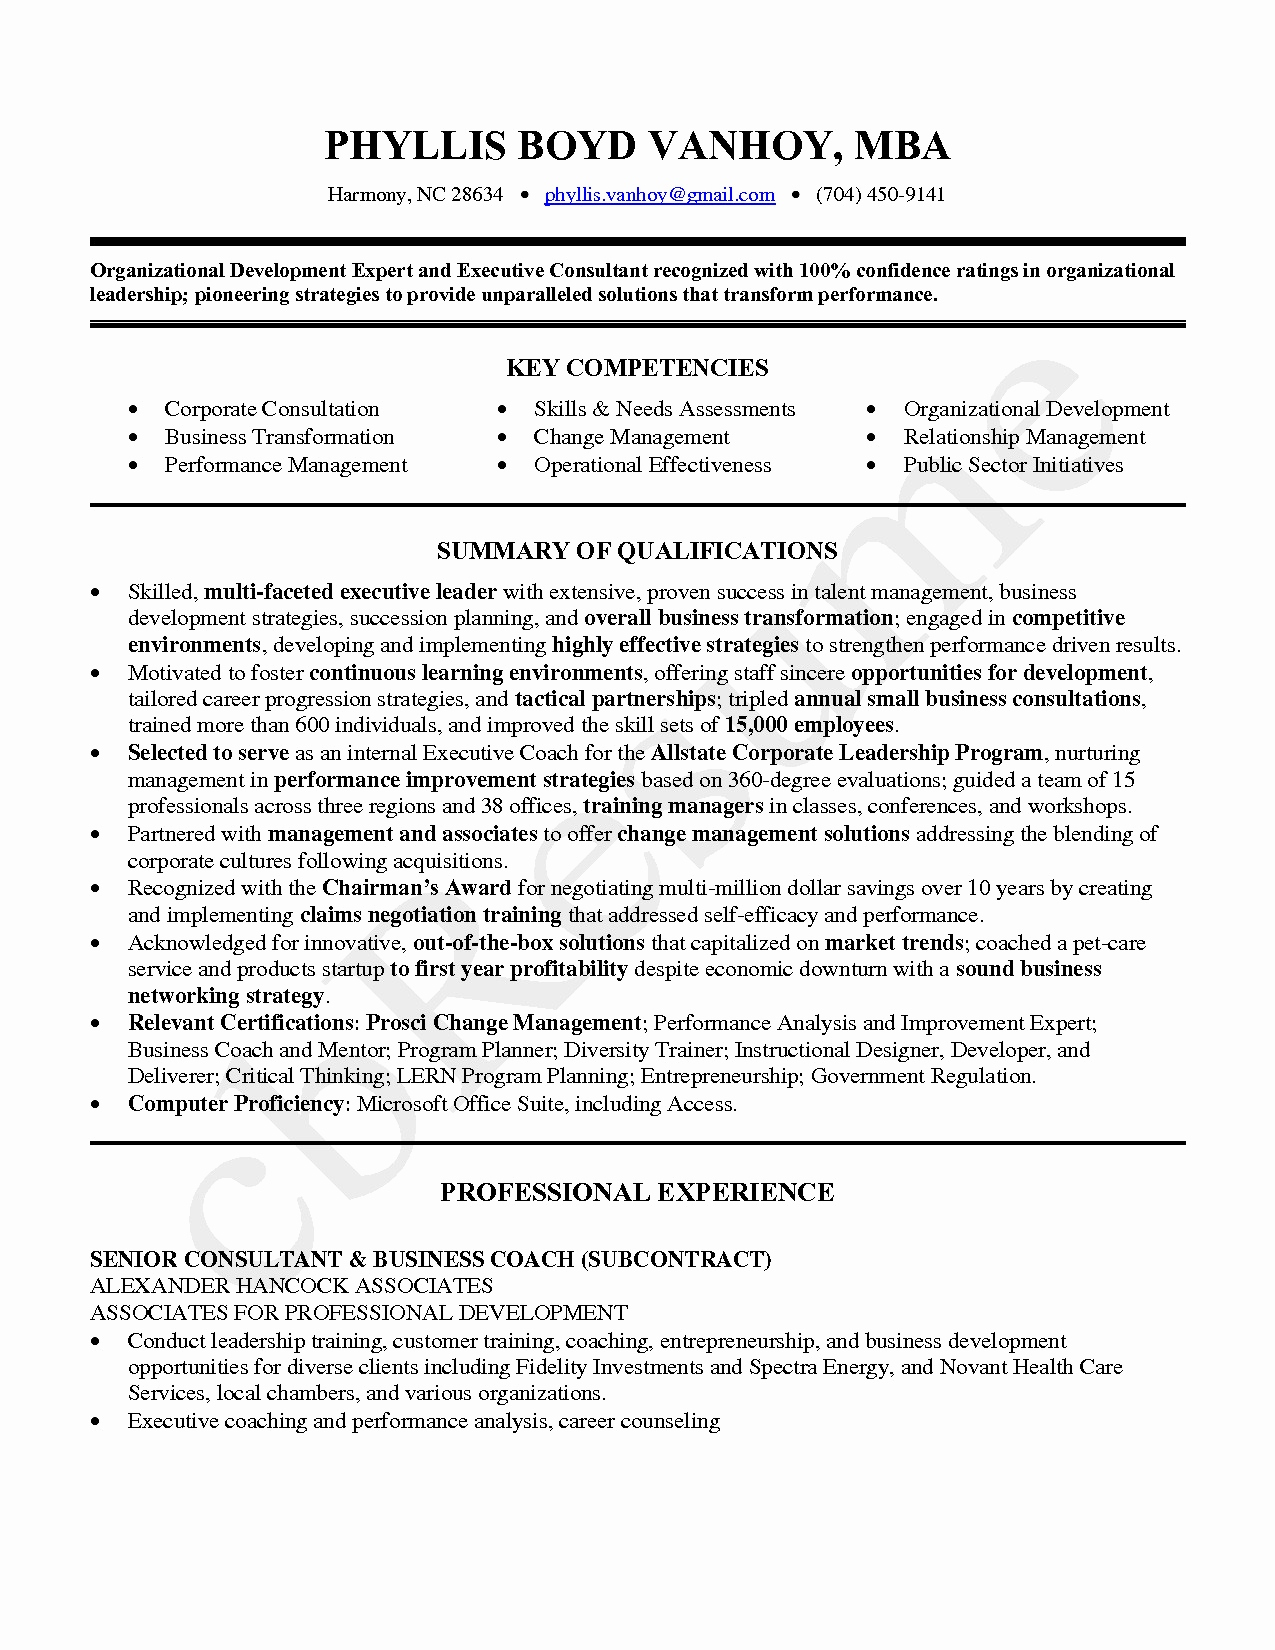 Google Docs Letter Template - Best Google Docs Resume Template